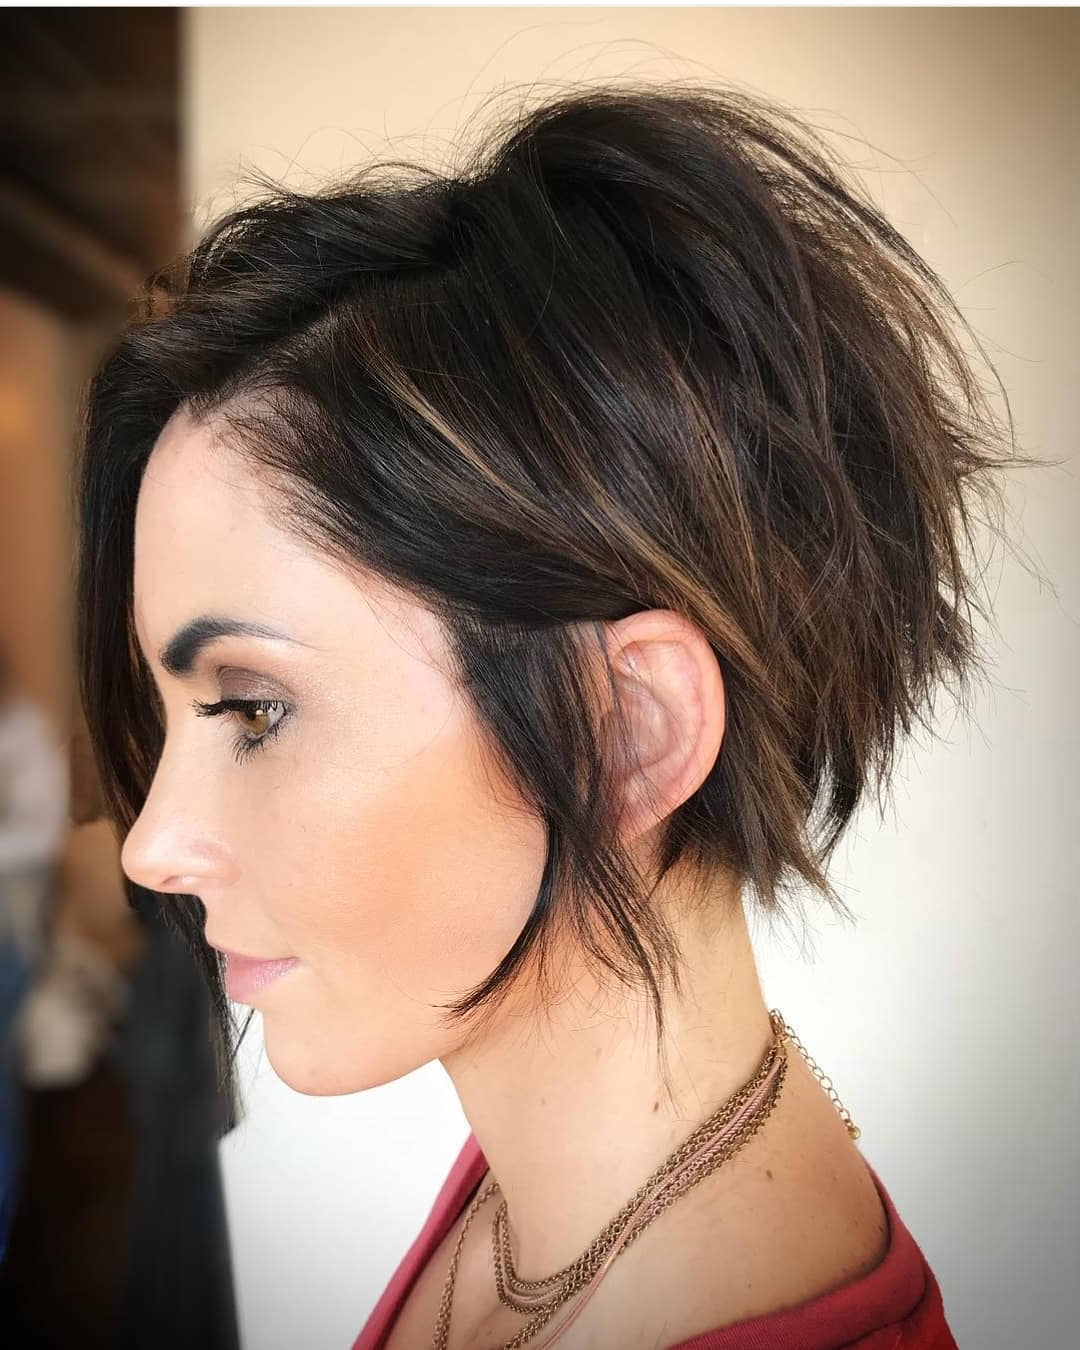 10 Pixie Haircut Inspiration, Latest Short Hair Styles For Pertaining To 2017 Dark Pixie Haircuts With Blonde Highlights (View 10 of 20)